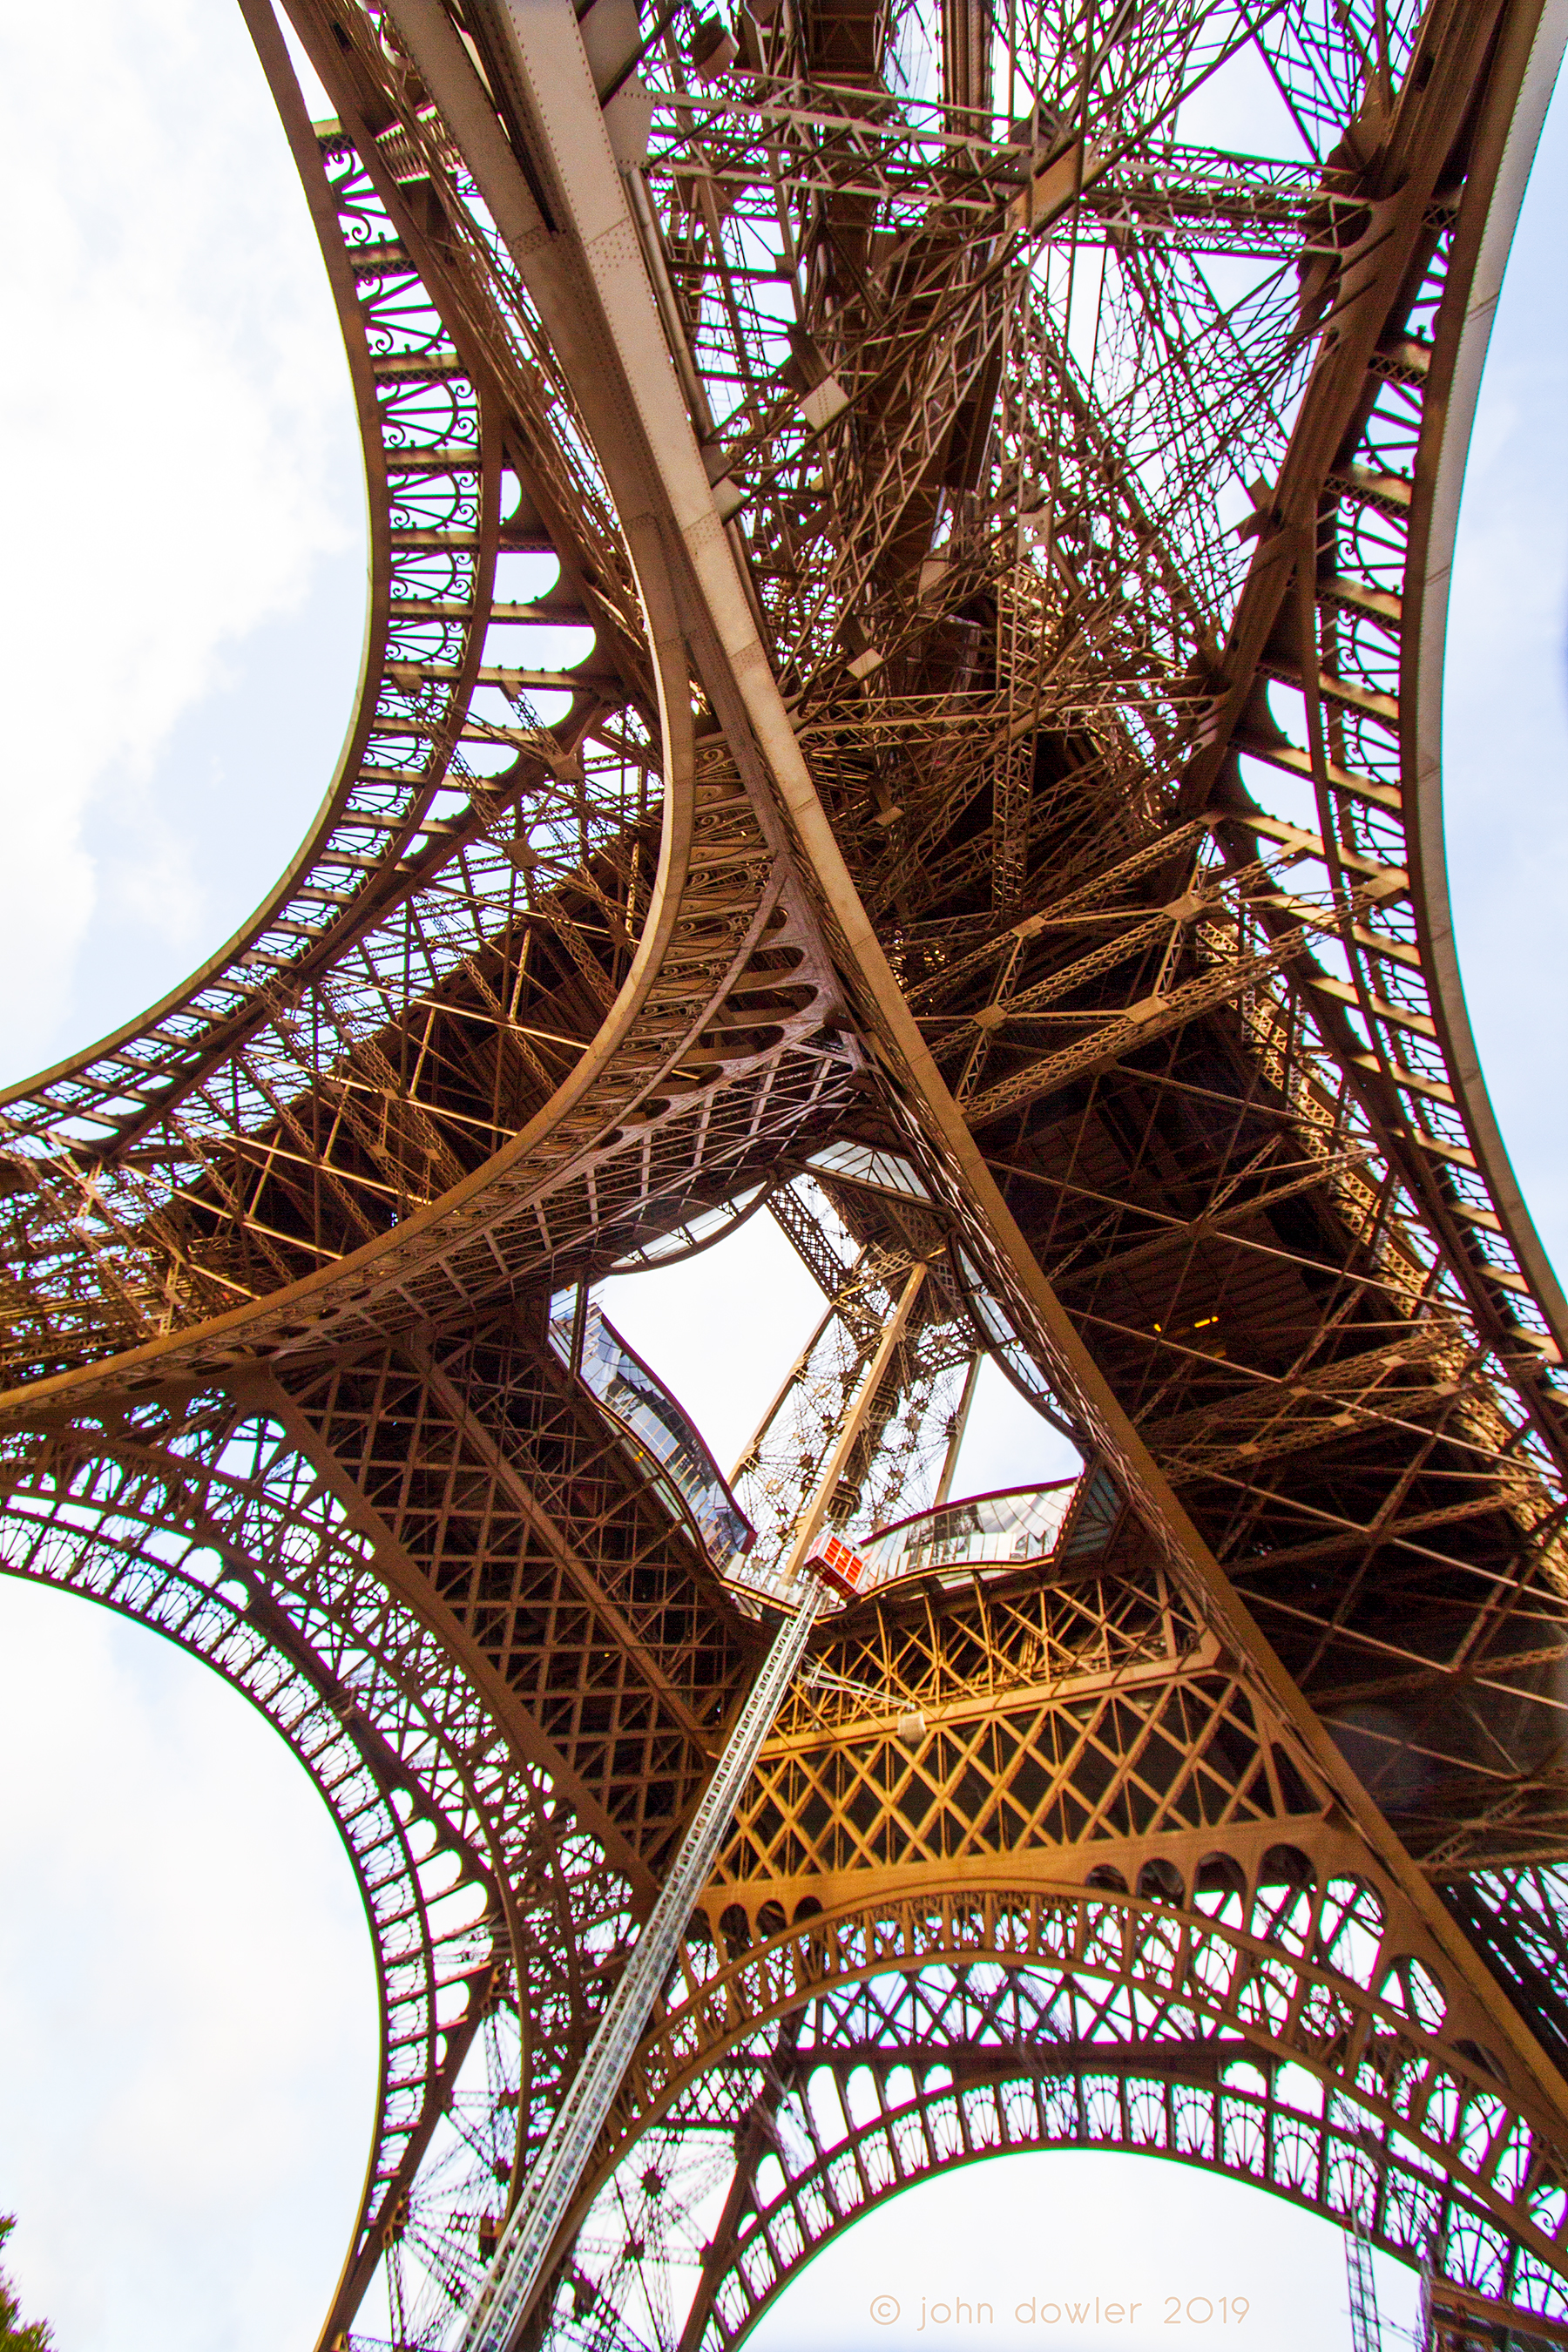 An angle on the Eiffel Tower from underneath.